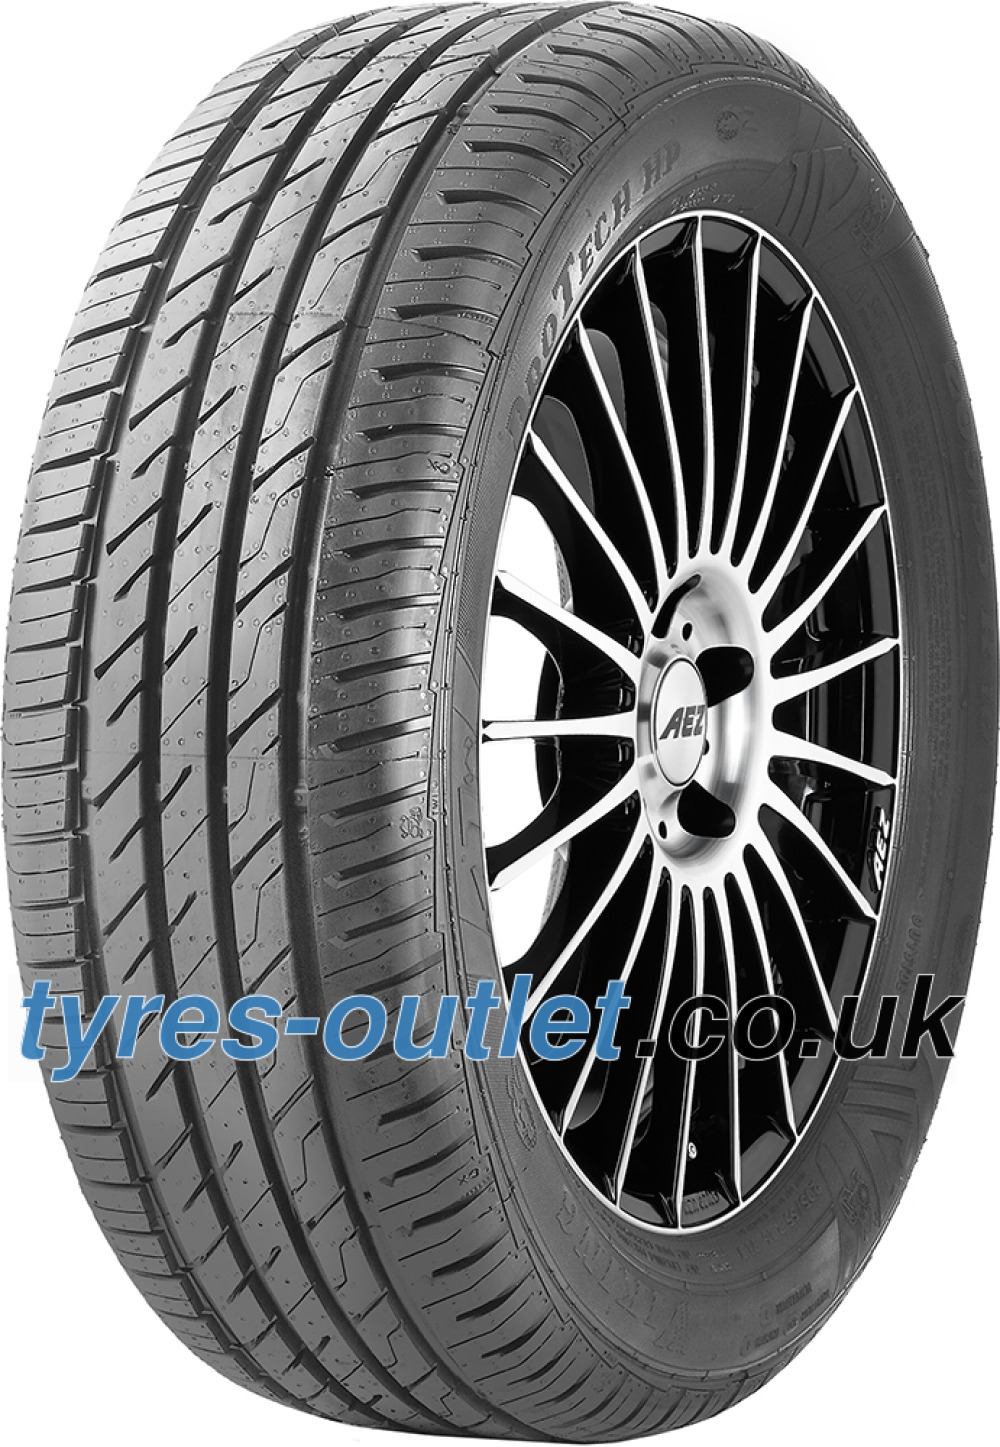 Viking ProTech HP ( 245/40 R17 91V with kerbing rib )